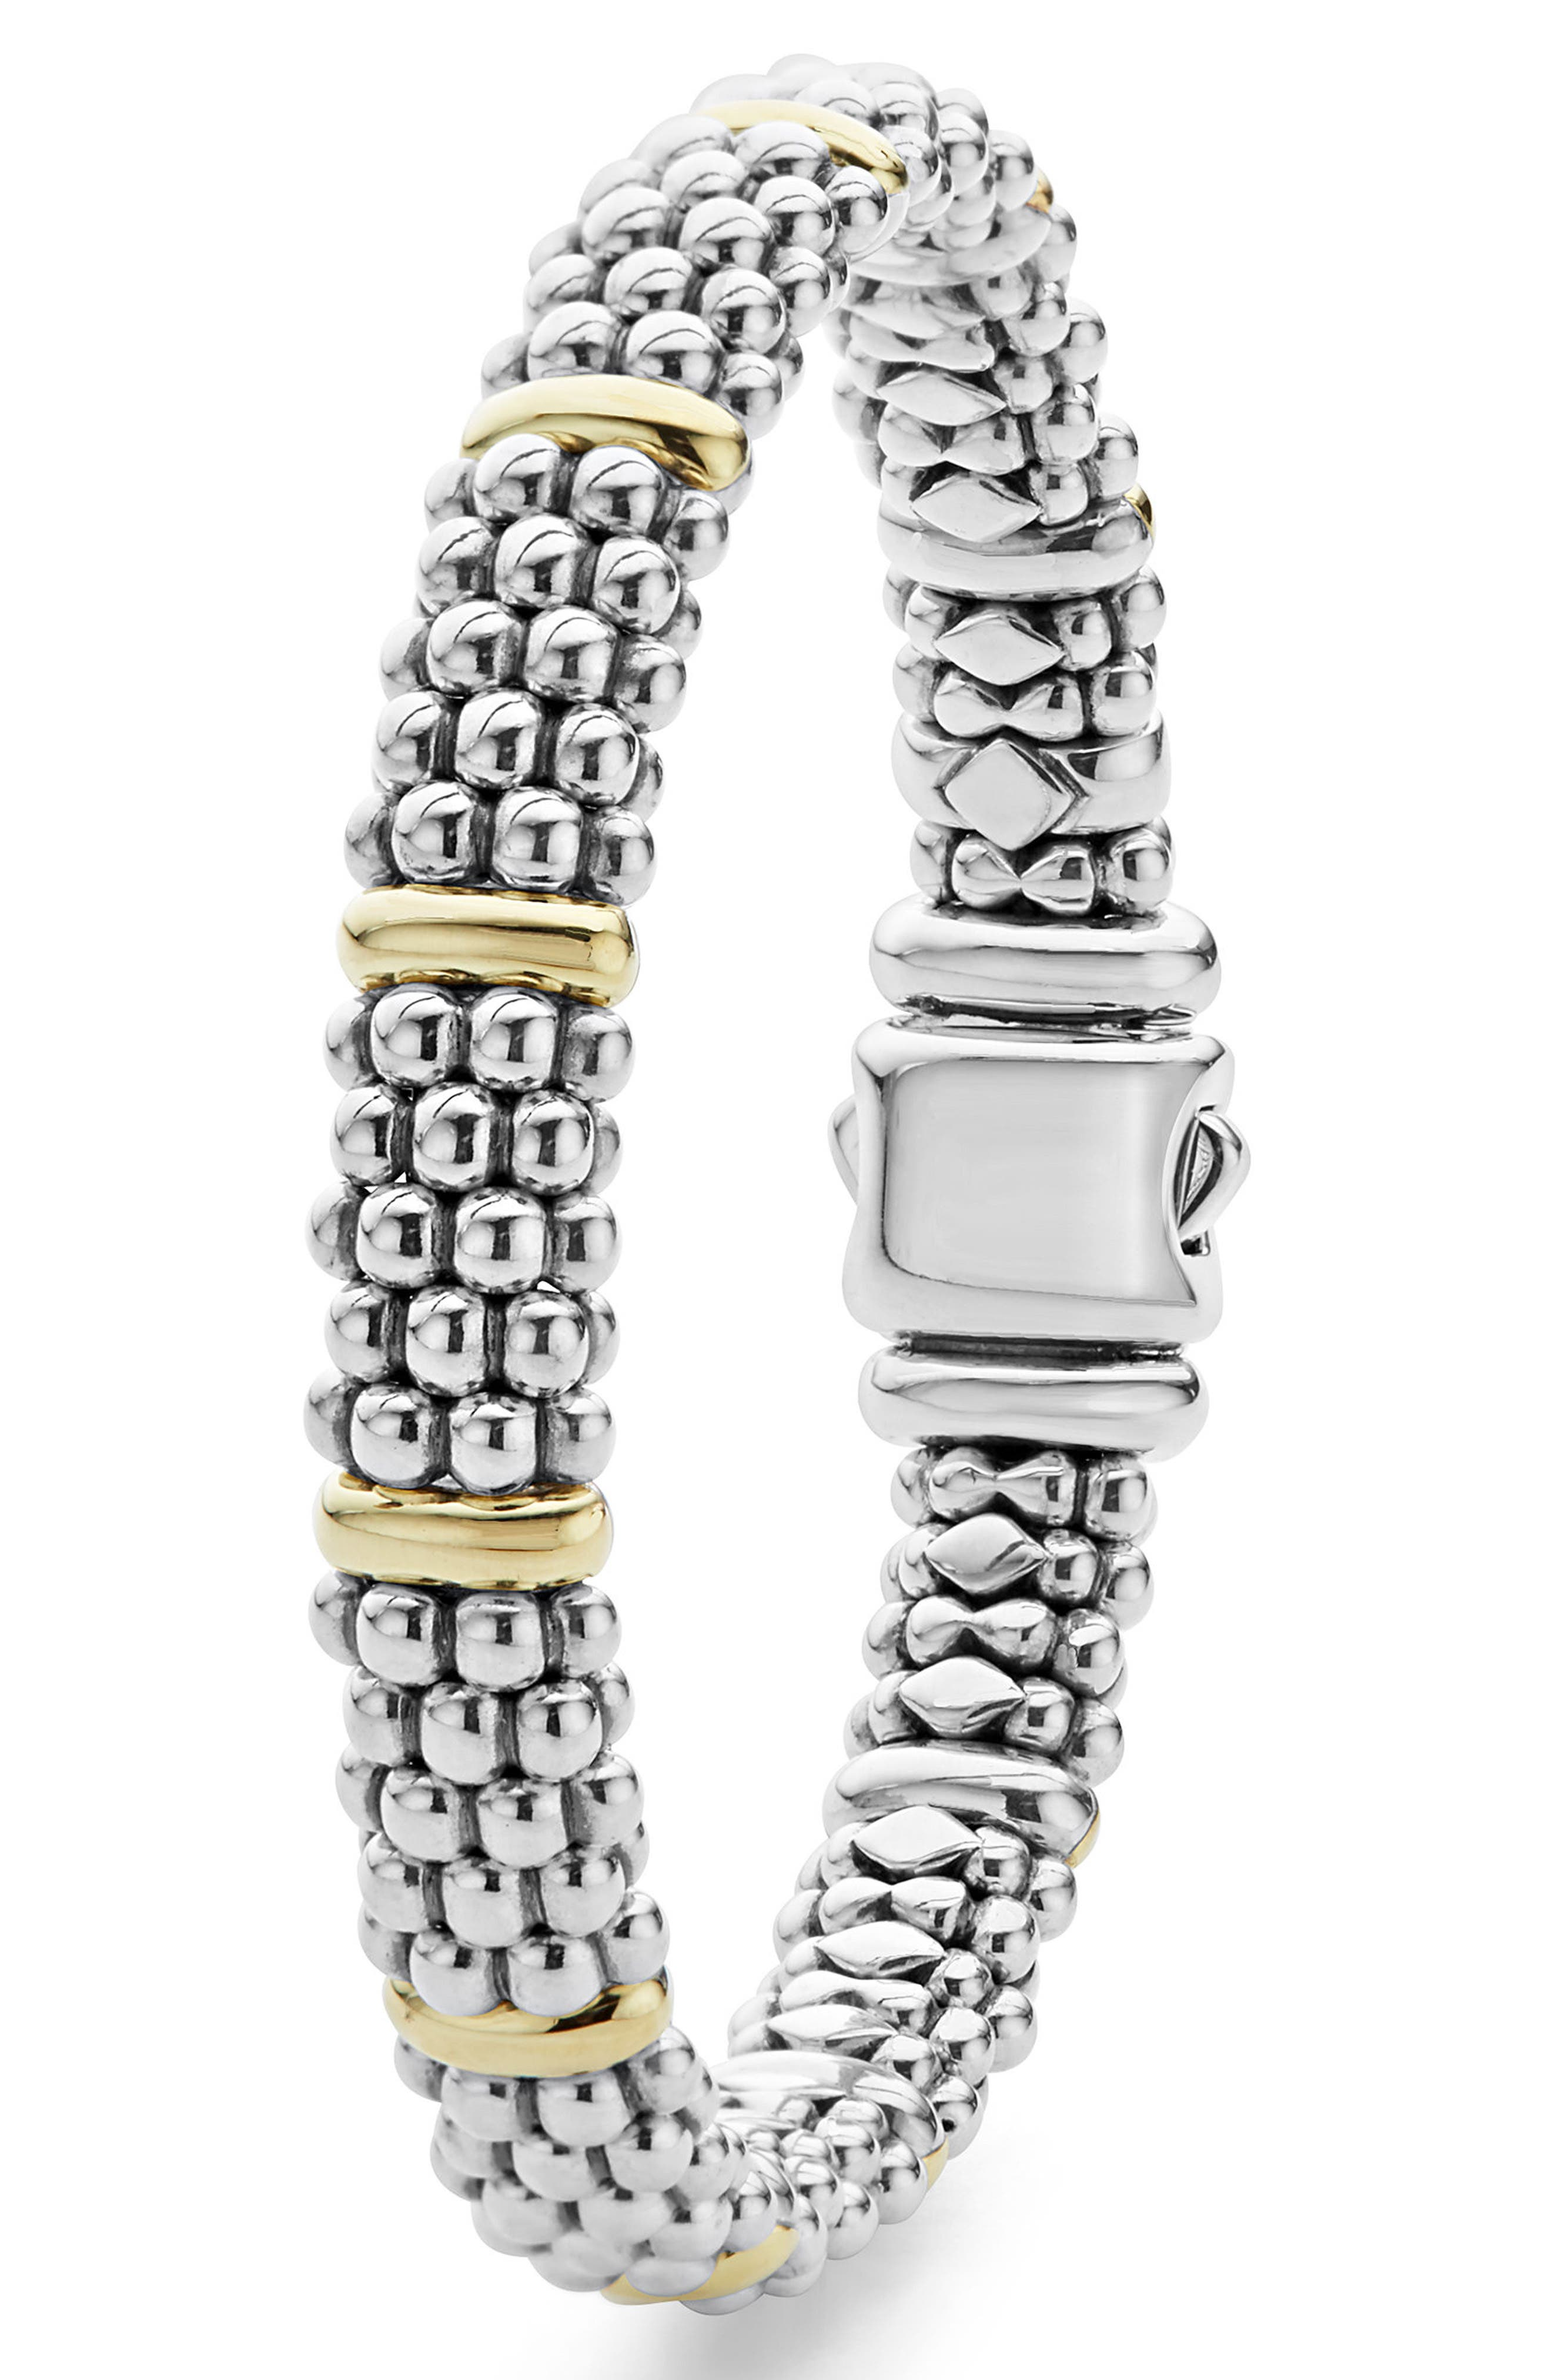 Oval Caviar Rope Bracelet,                             Alternate thumbnail 2, color,                             Silver/ Gold